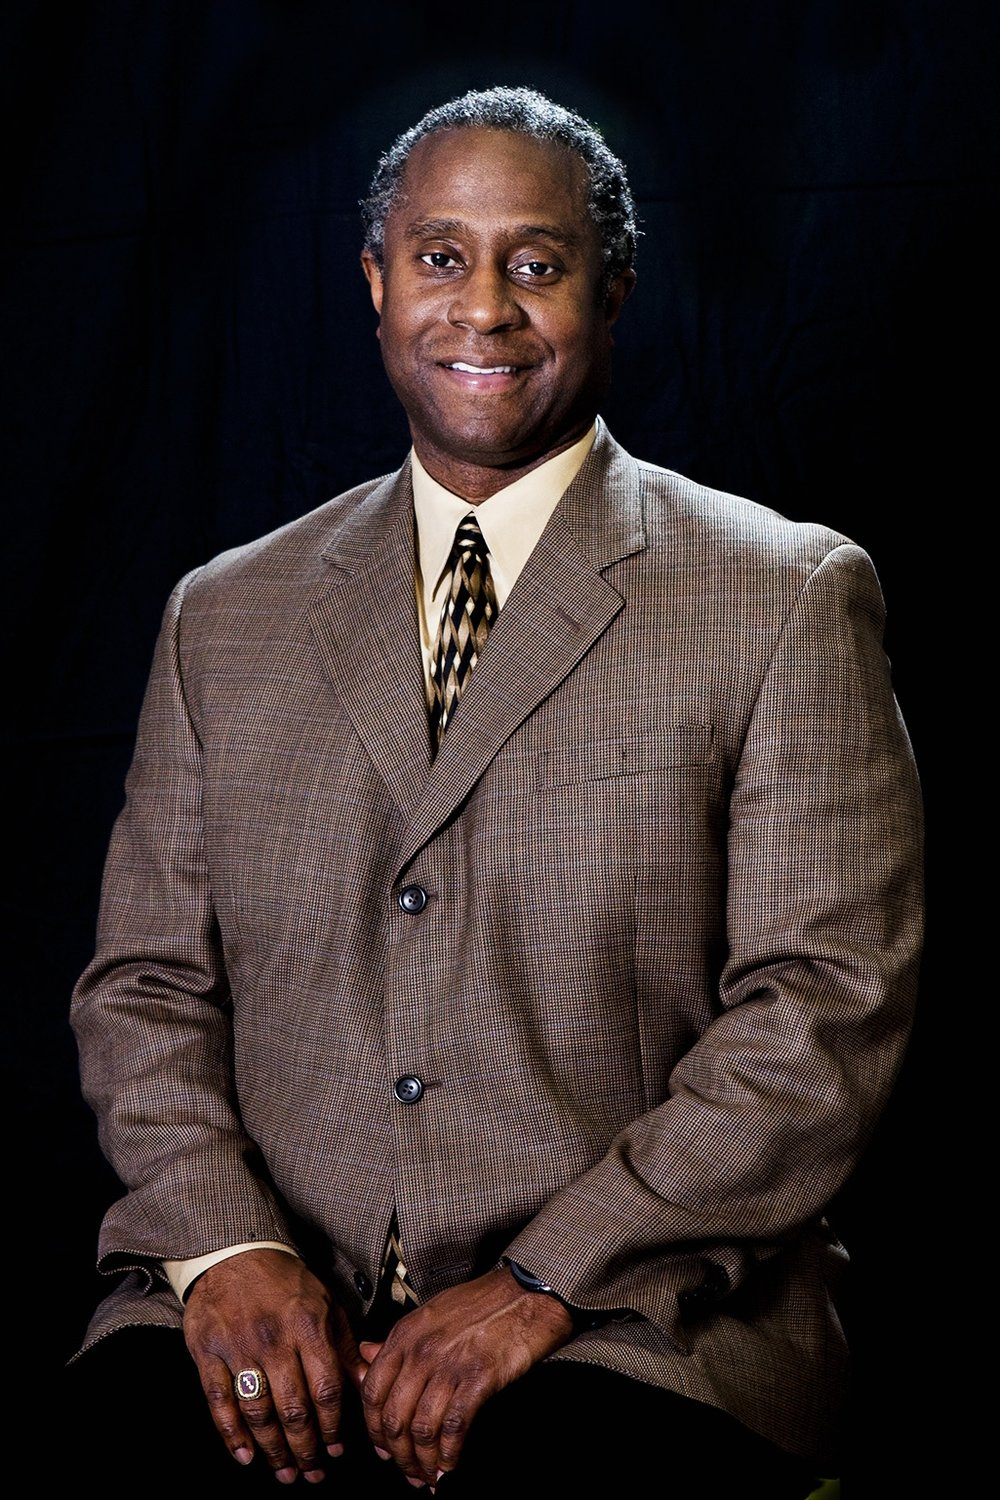 Dr. Wayne Bethea - Information Technology & STEM InstructorPhD Computer Science